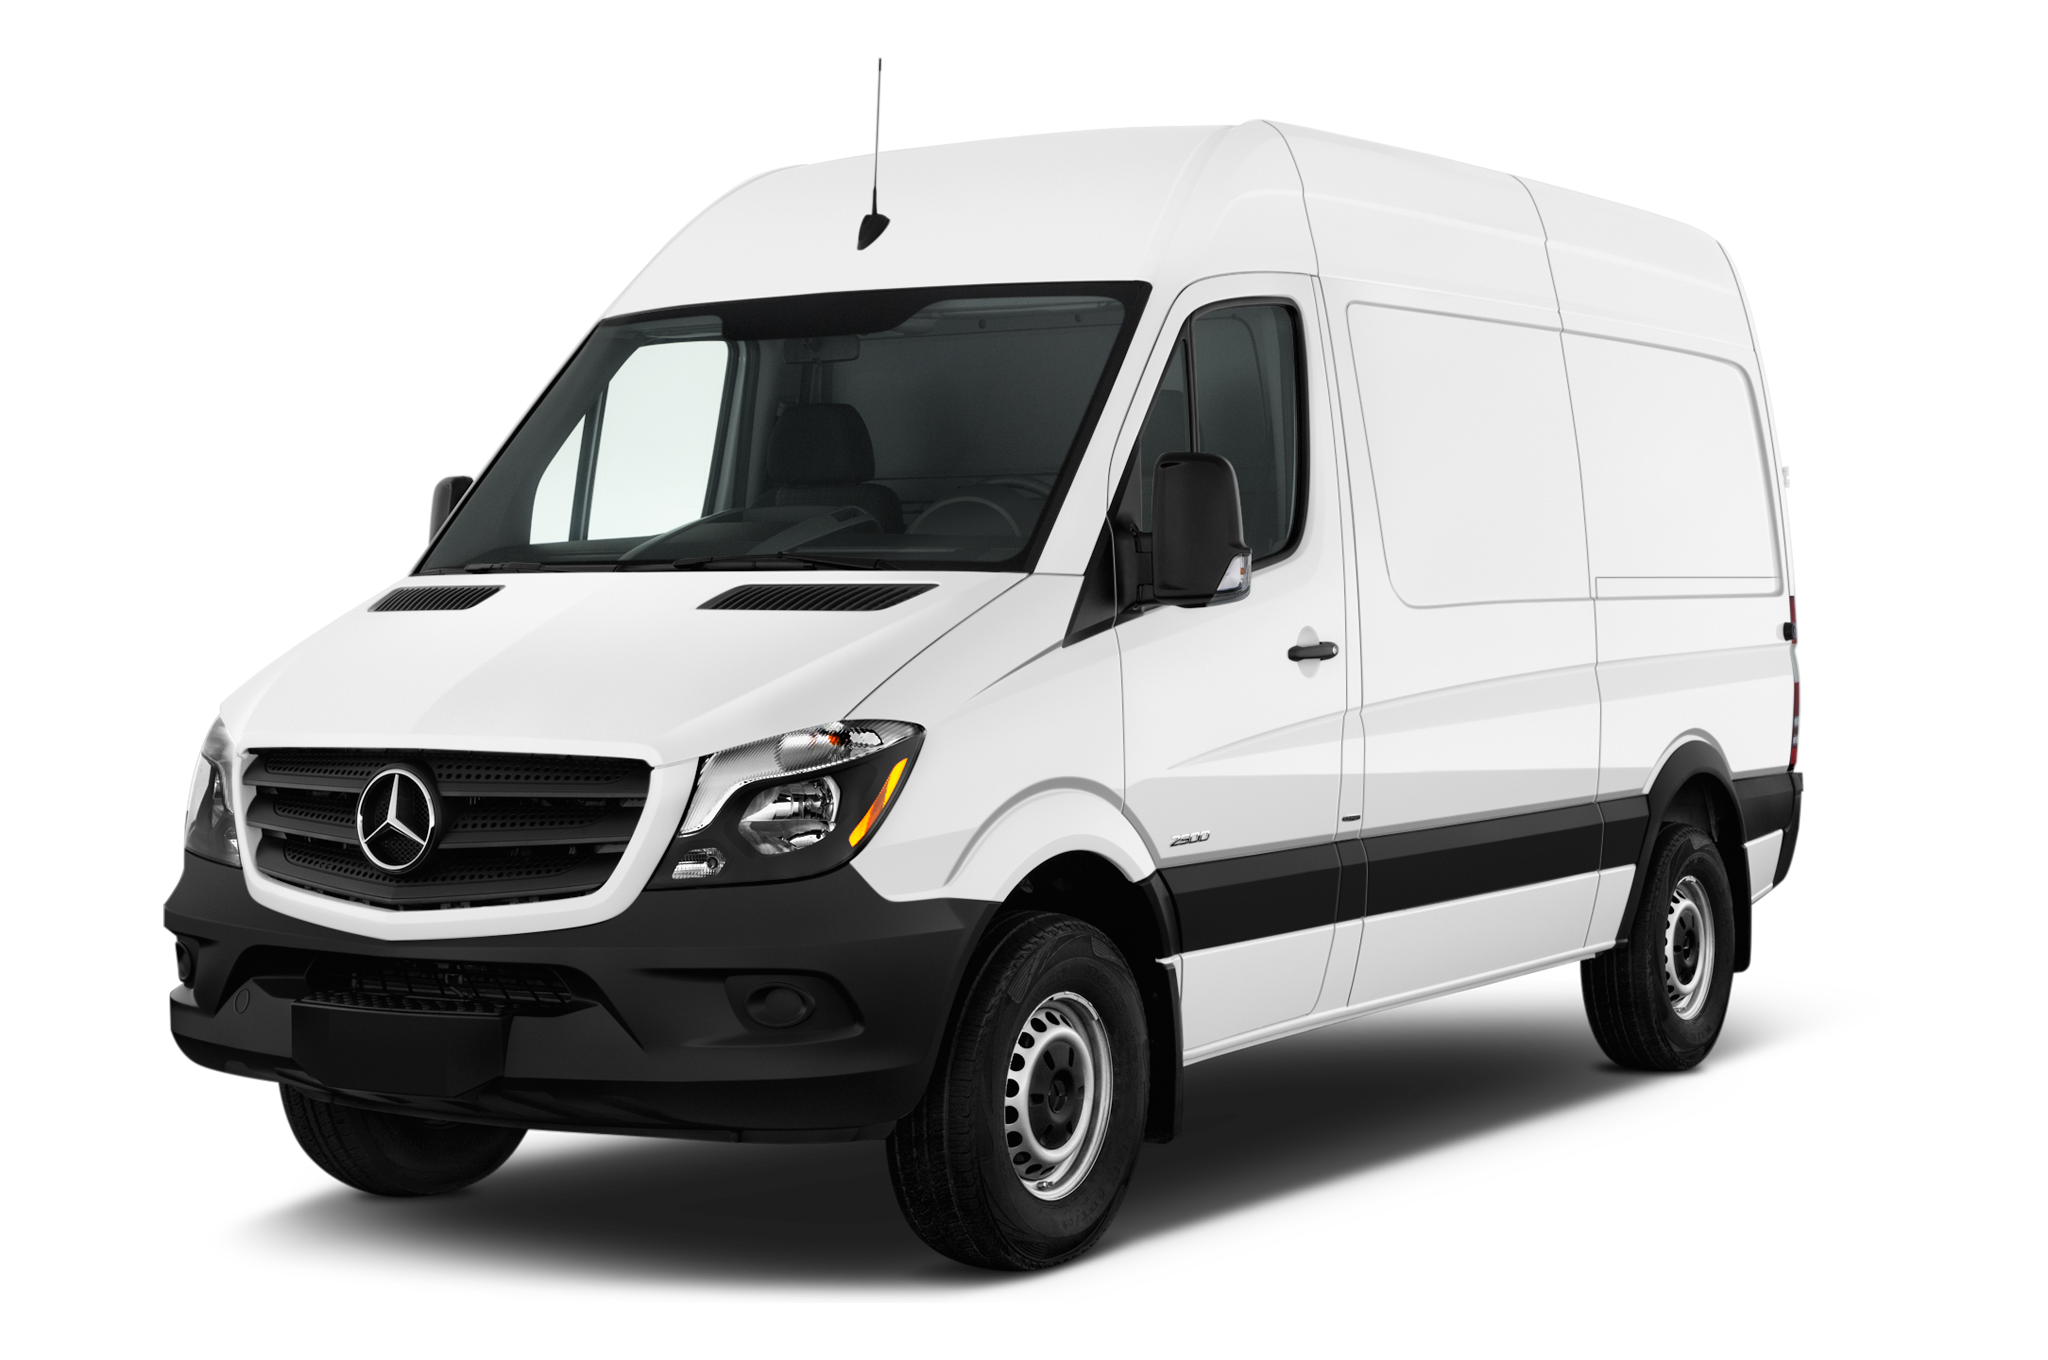 2016 mercedes benz sprinter cargo van 3500 144 wb high for 2016 mercedes benz 3500 high roof